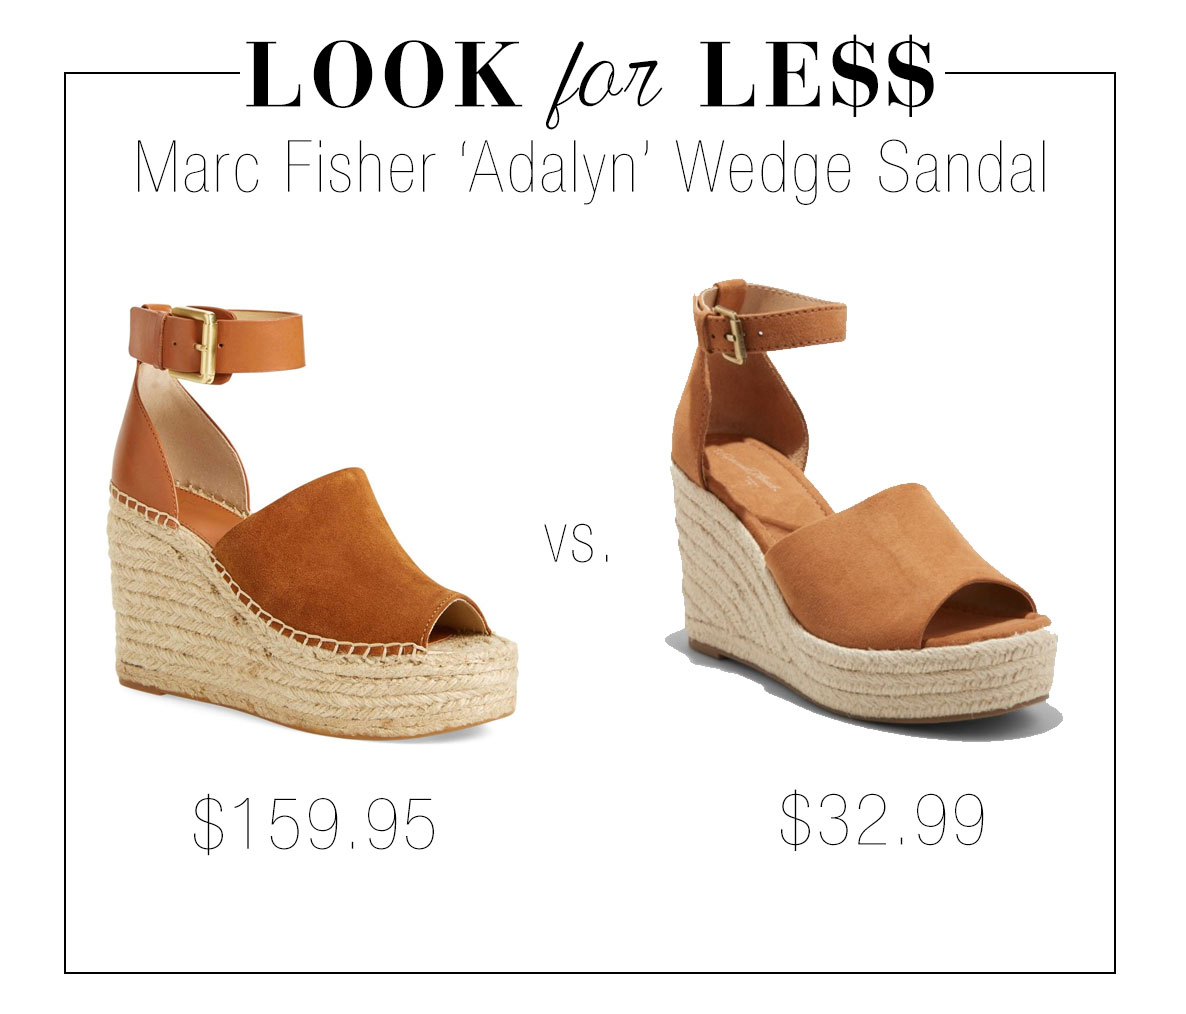 fa7cc61f26e Shop this Marc Fisher wedge espadrille sandal look for less at Target!